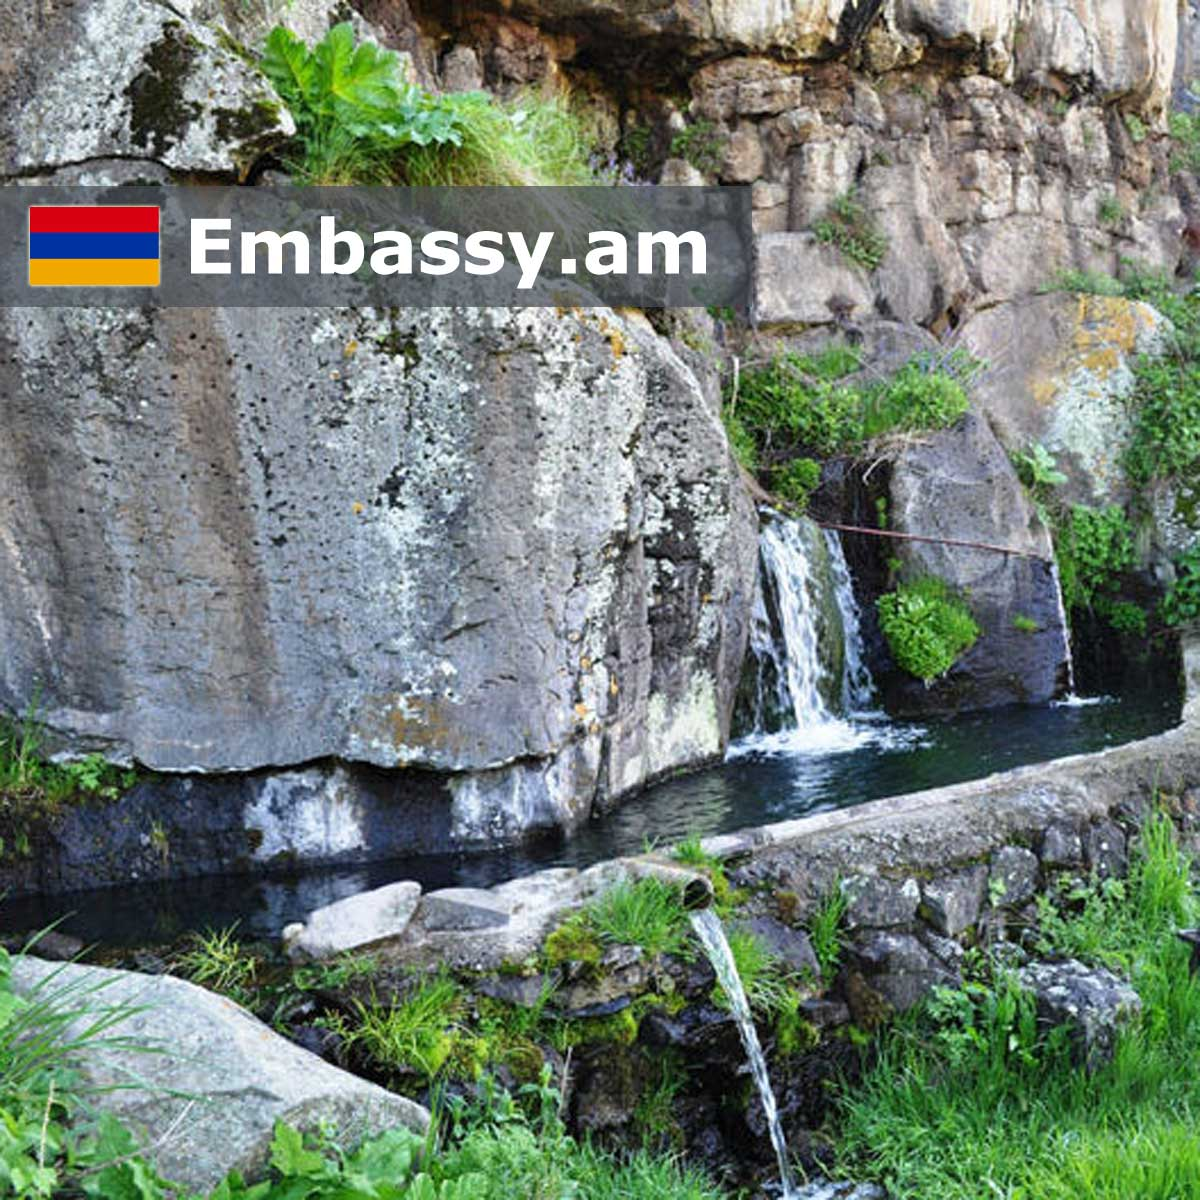 Stepanavan - Hotels in Armenia - Embassy.am